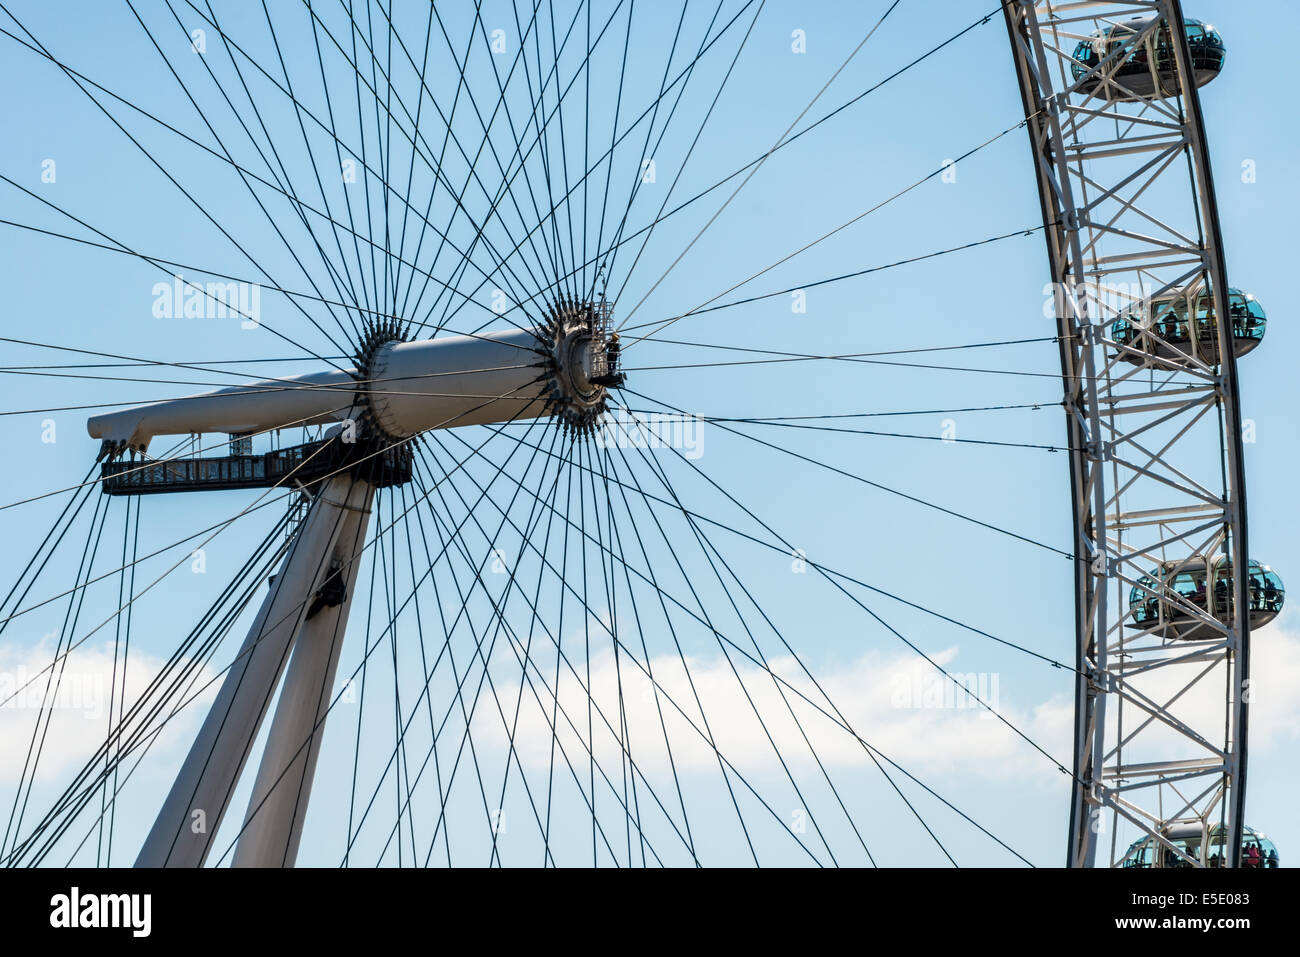 The London Eye is a giant Ferris wheel on the South Bank of the River Thames in London and a landmark tourist attraction. - Stock Image